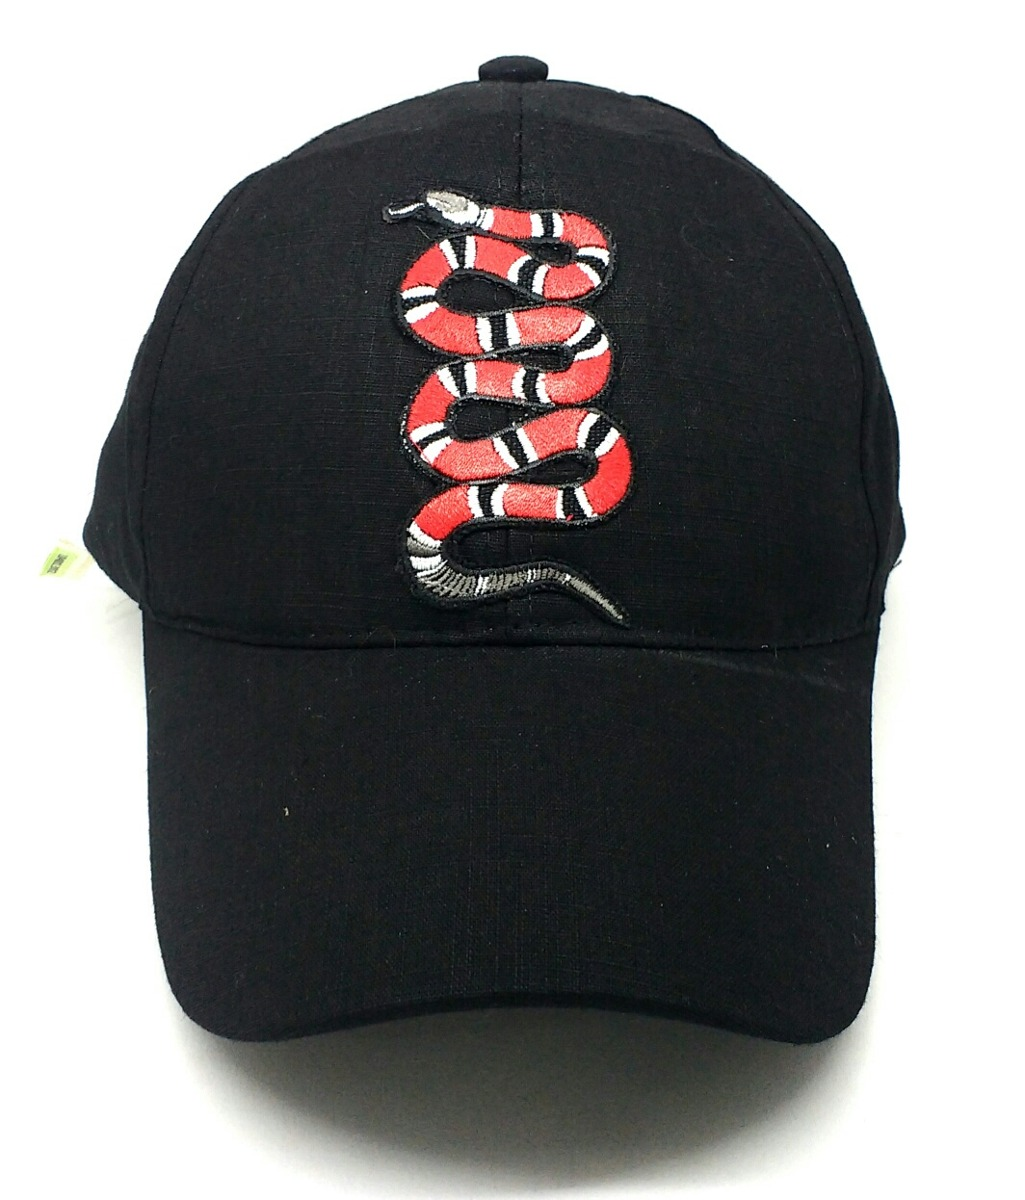 Gorra Serpiente Gucci Bordada Foto Real Hebilla Regulable -   780 2bceea8438e